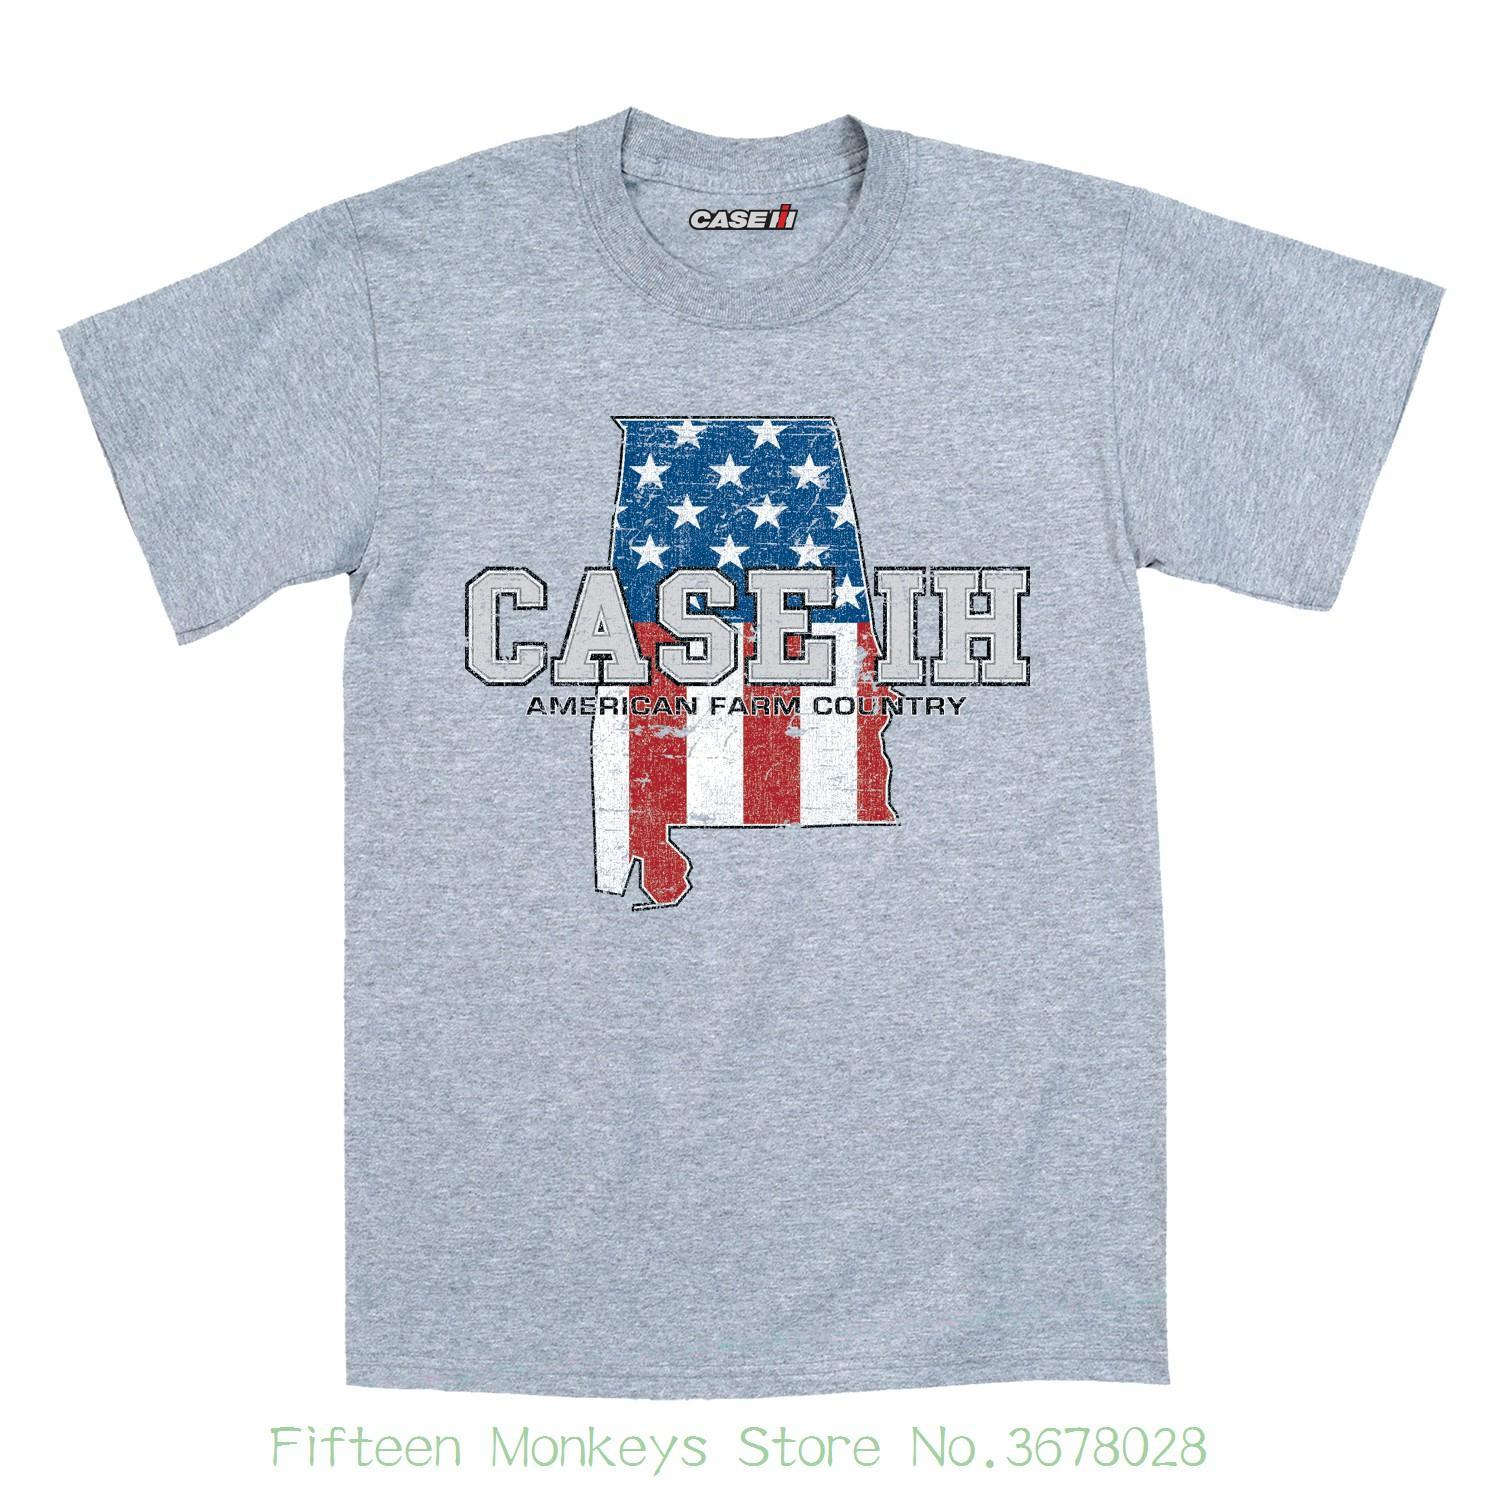 449168a86e Short Sleeves Cotton Fashion T Shirt Free Shipping Case Ih Country  Patriotic Al